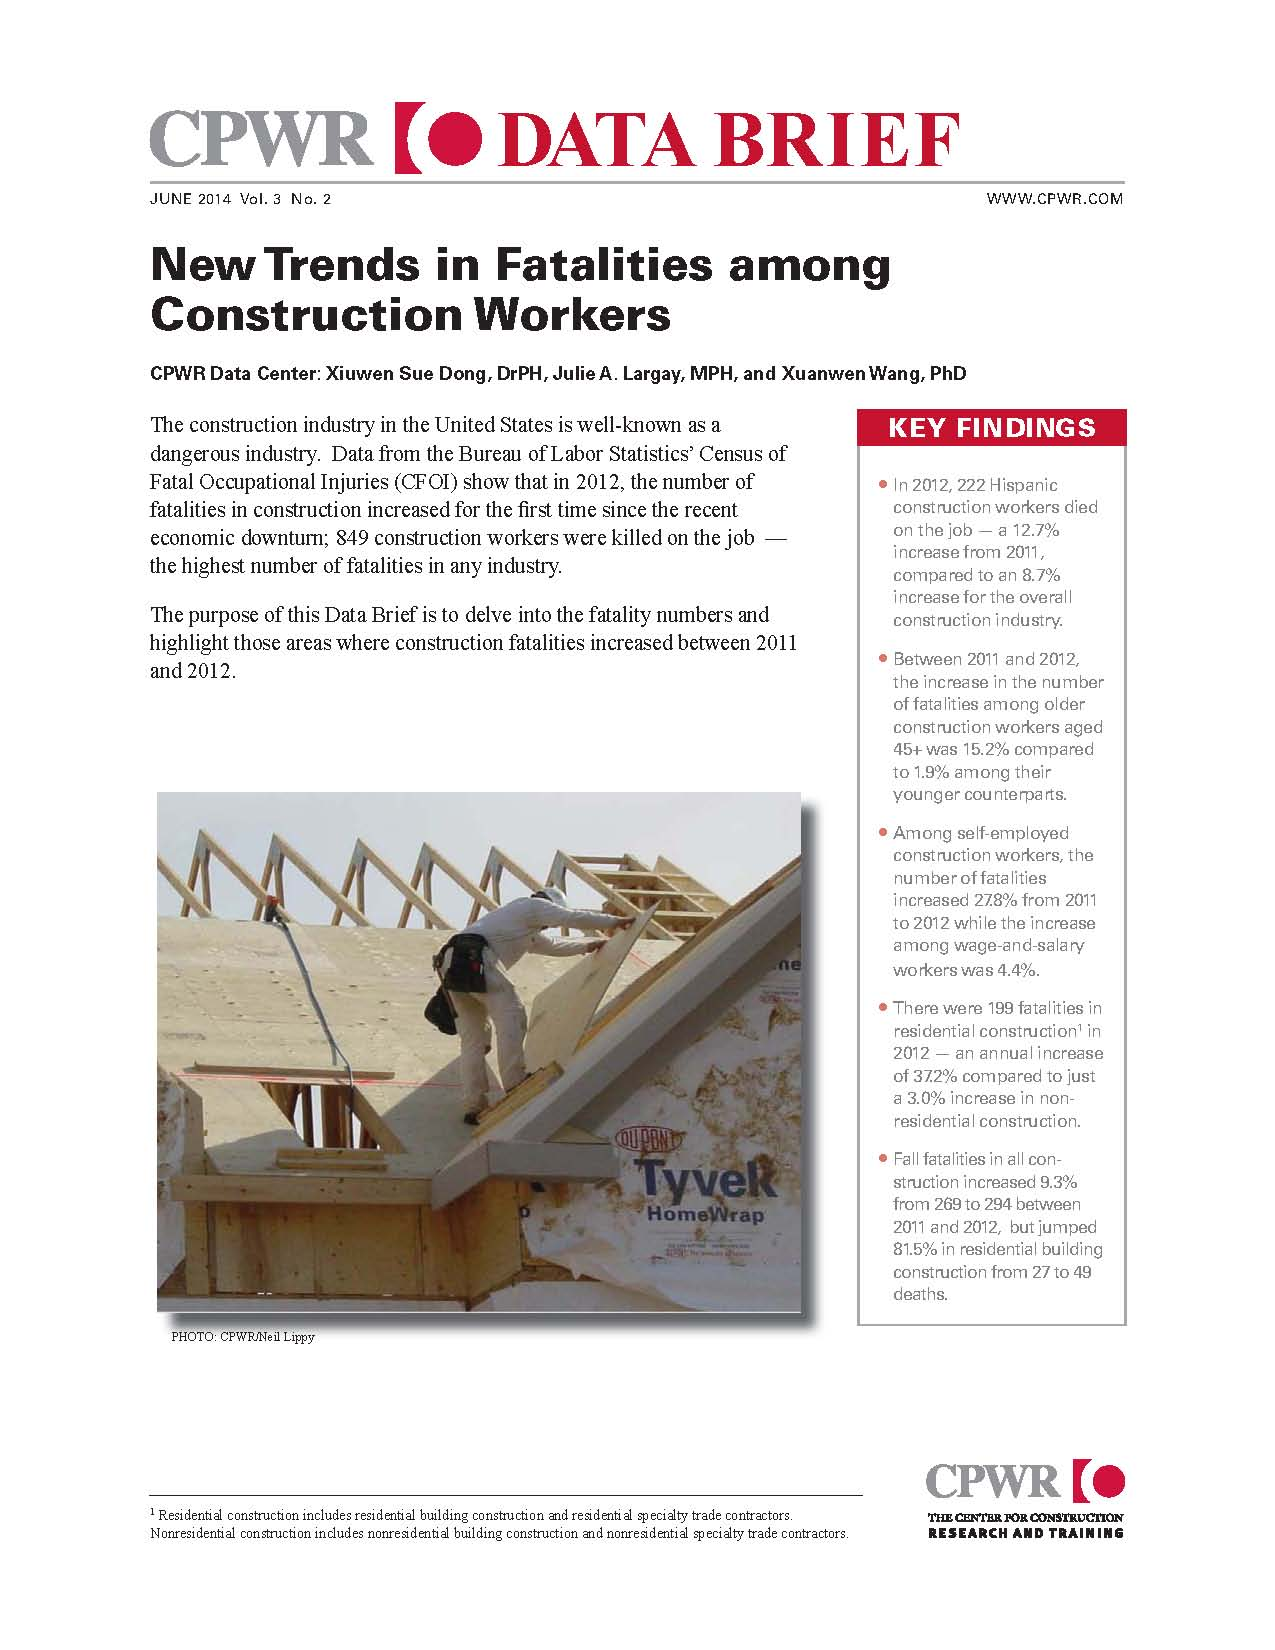 Pages from Data Brief- New Trends in Fatalities among Construction Workers